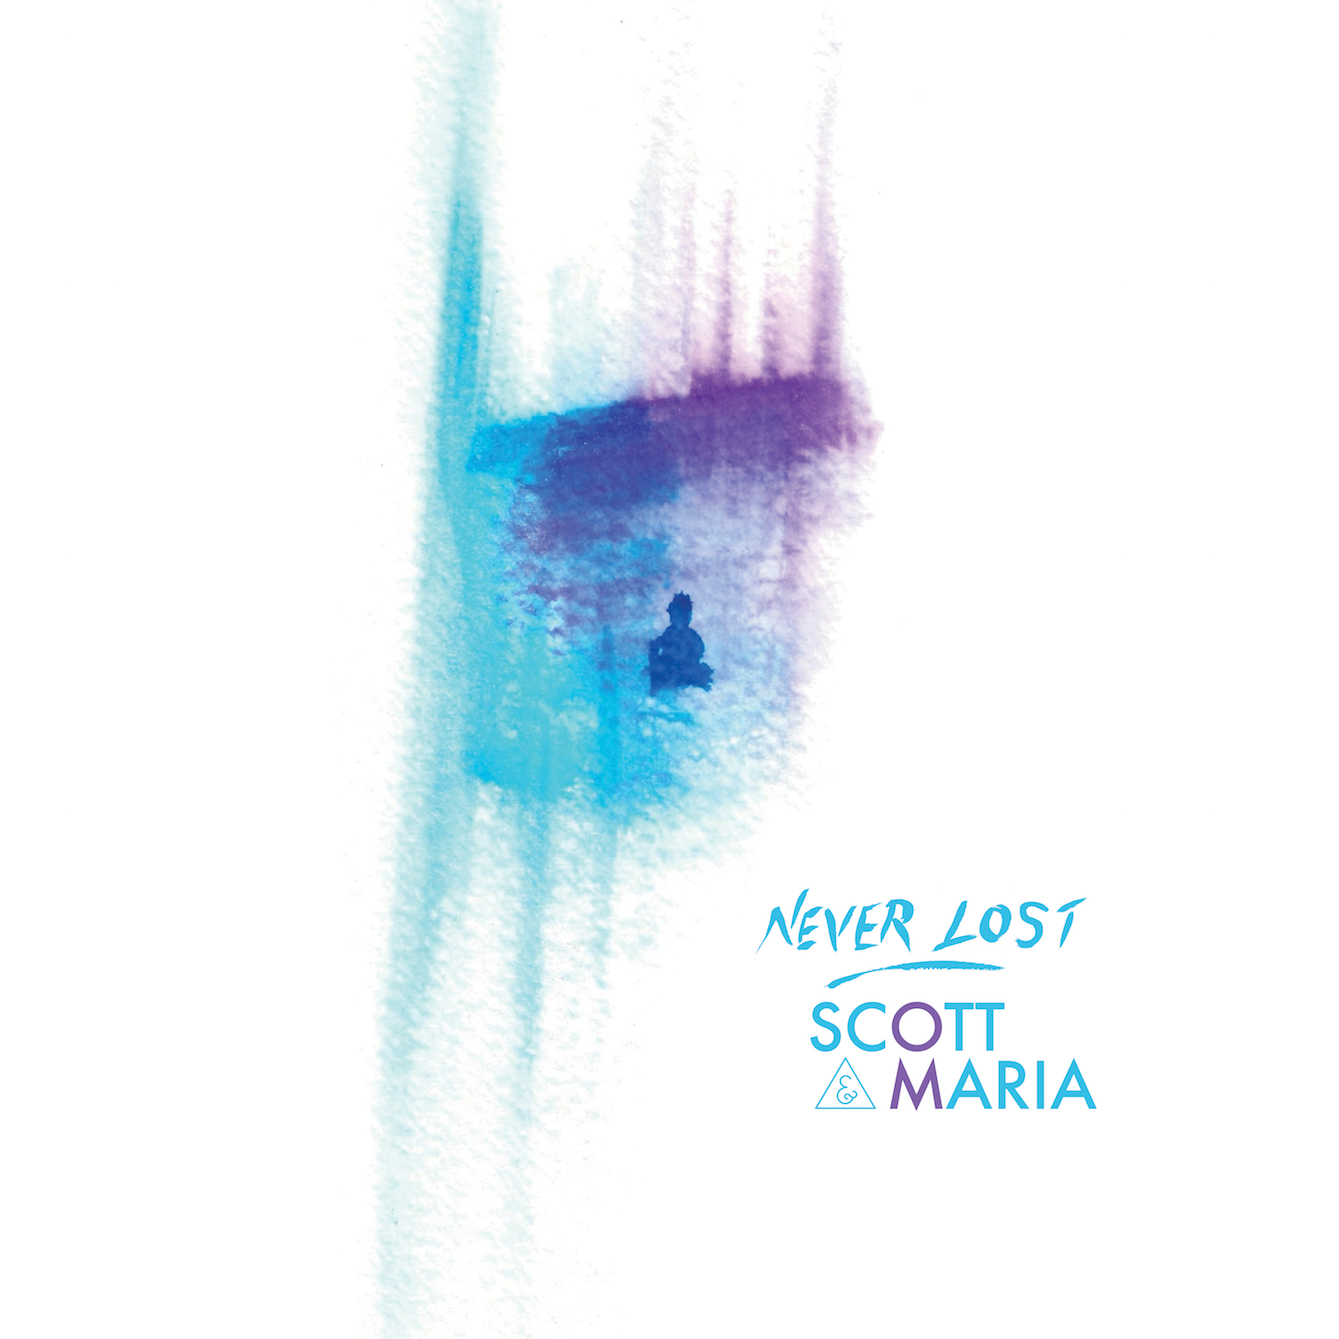 Never Lost - Scott and Maria EP 2019